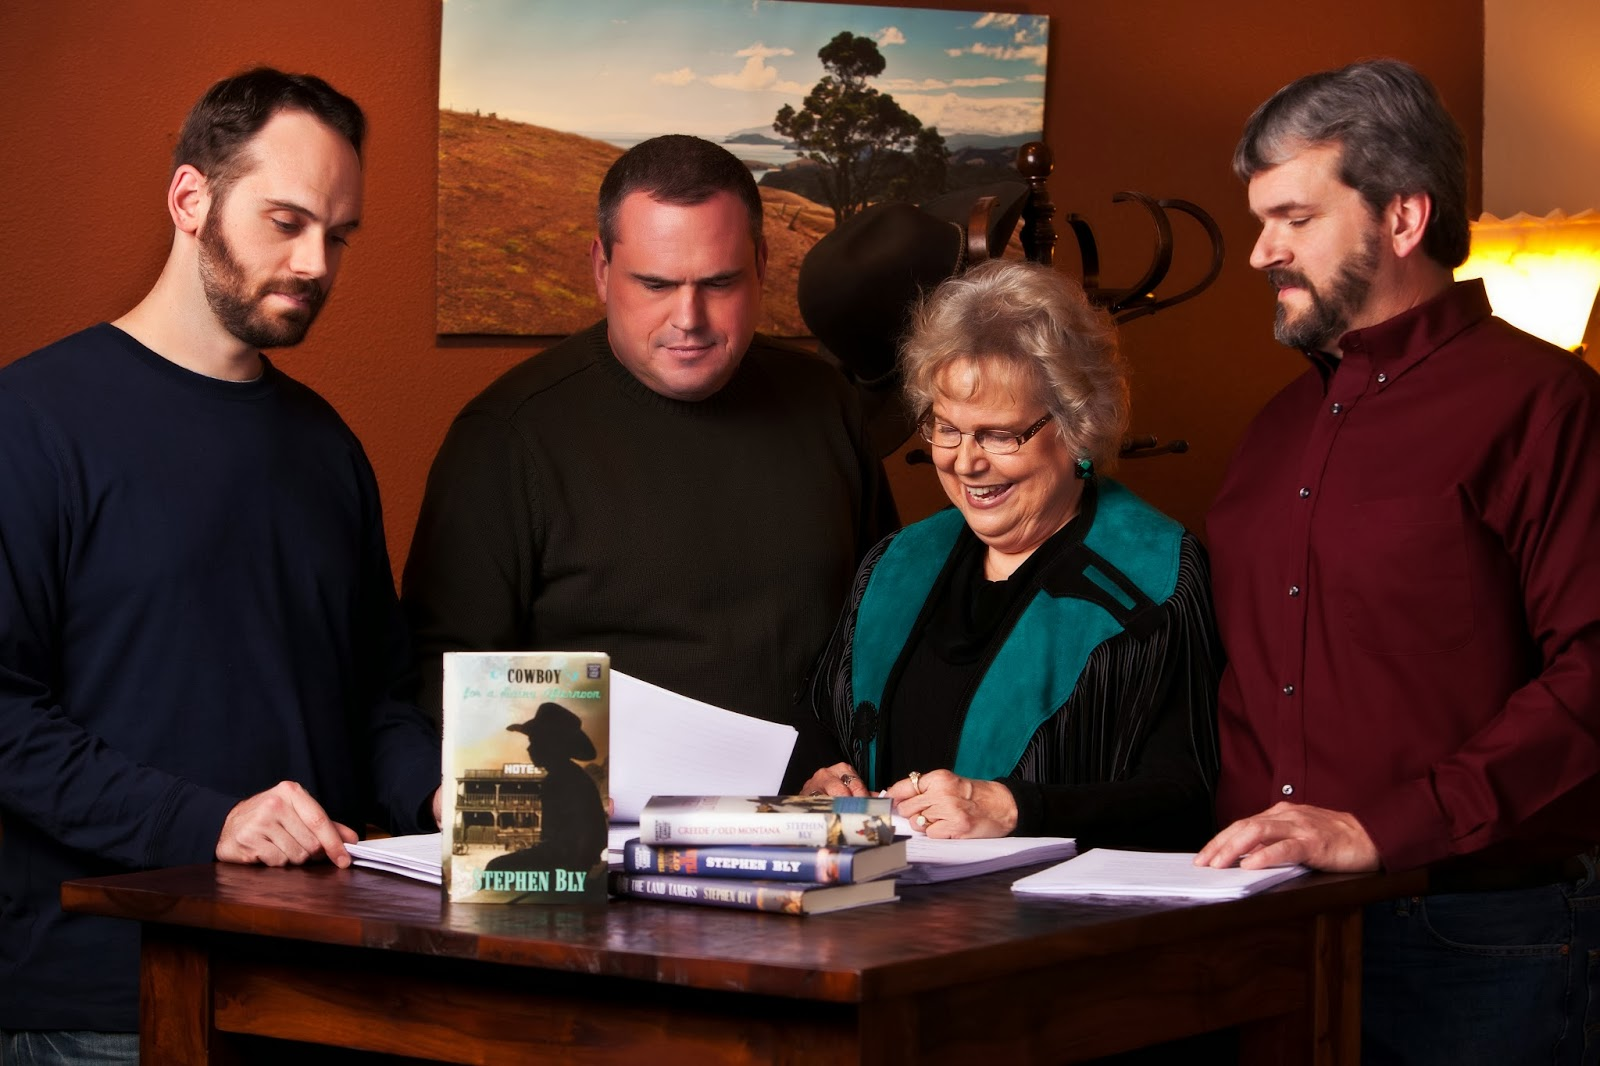 Author Janet Chester Bly and 3 sons: Aaron, Mike, & Russ Bly